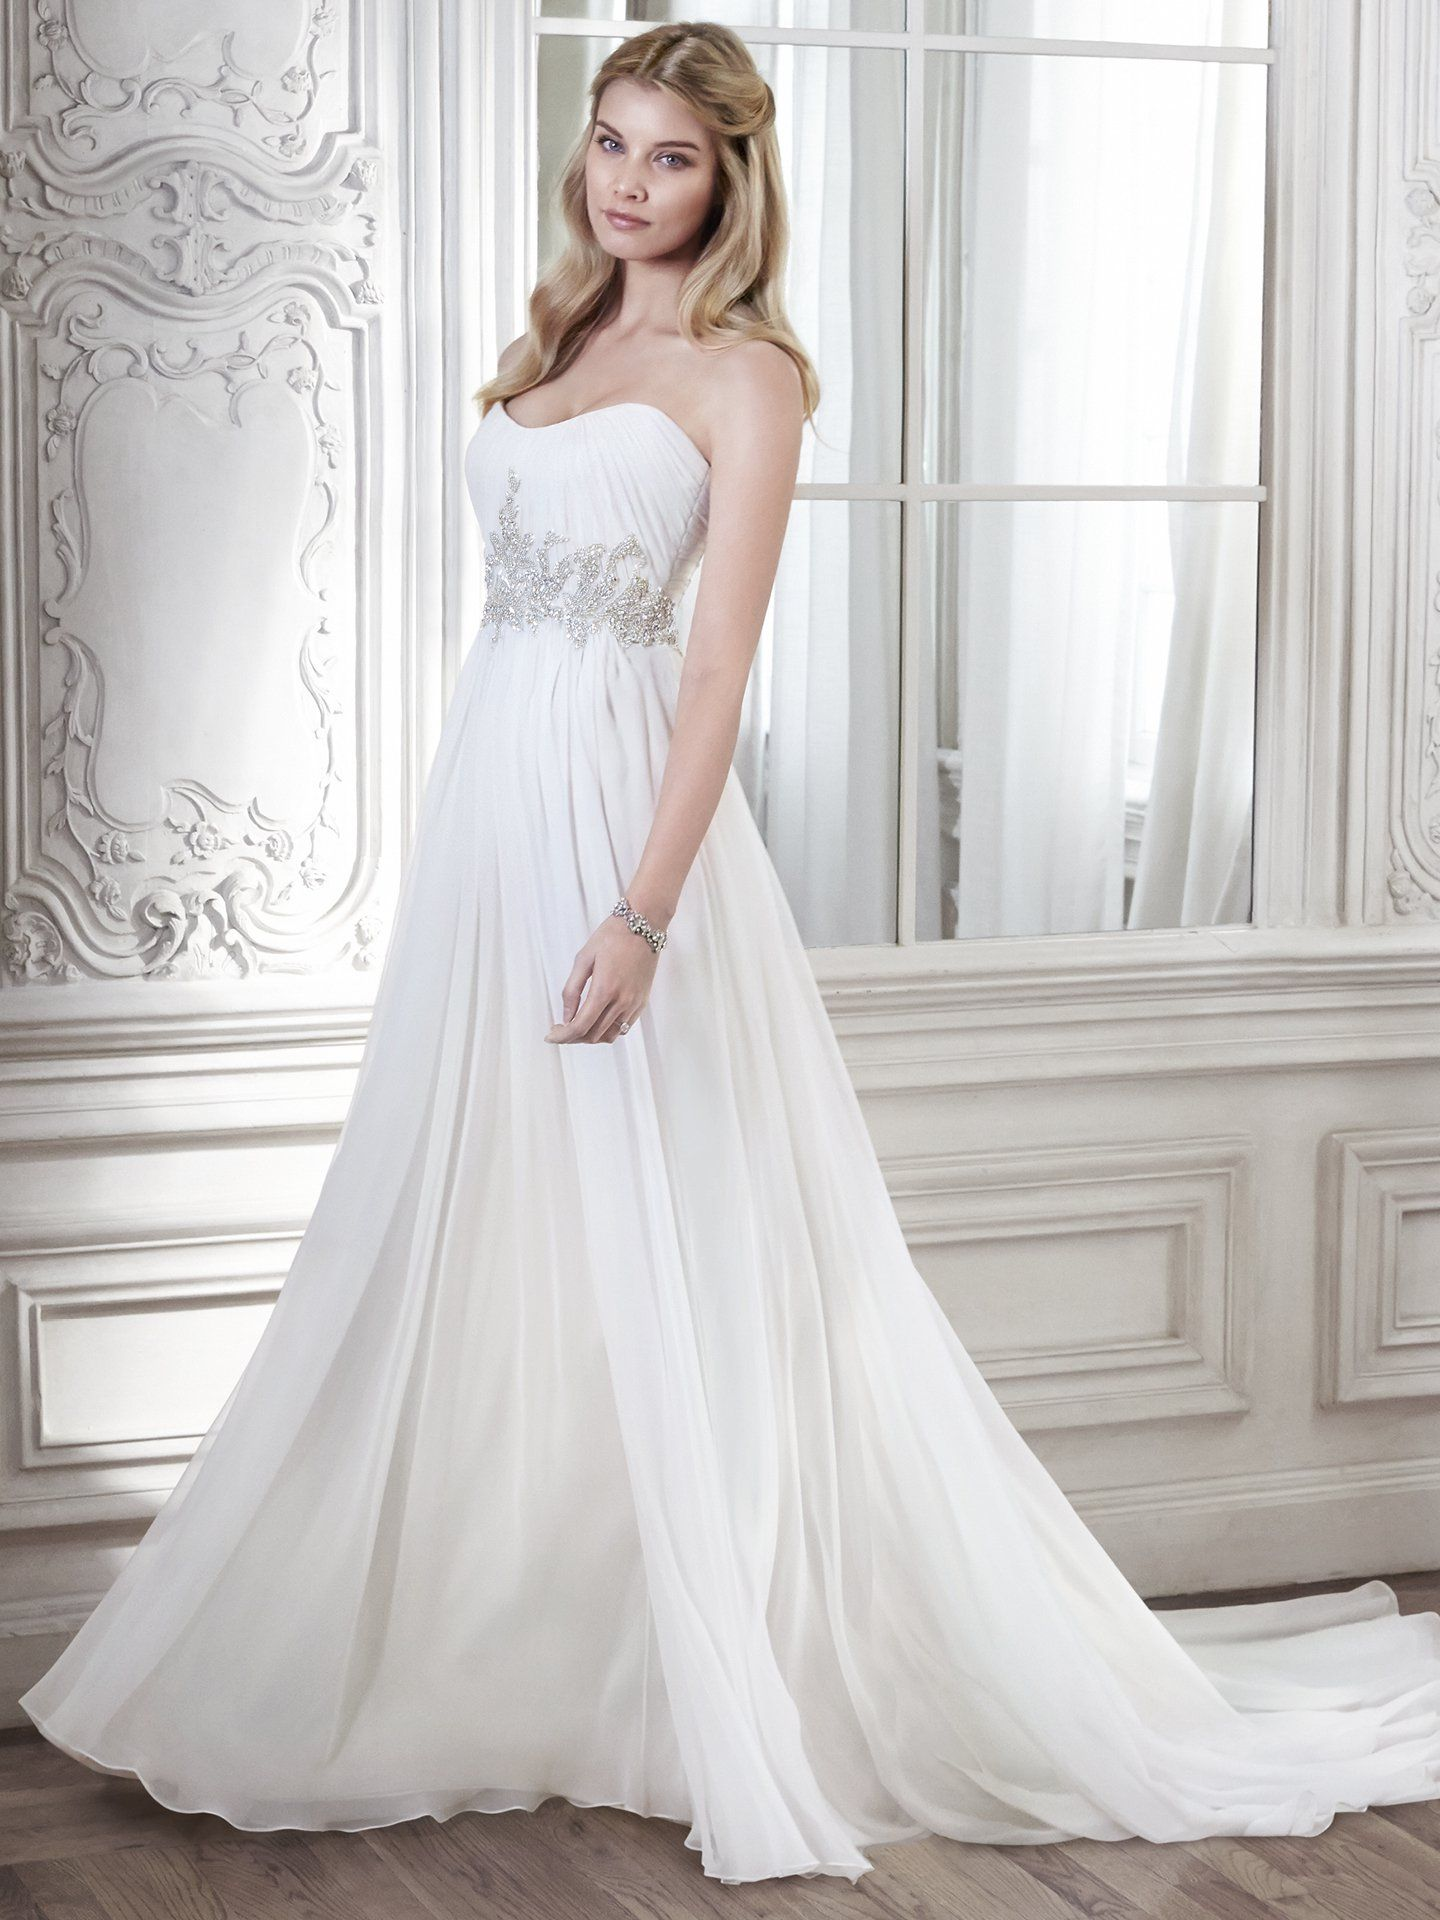 Maggie Sottero Wedding Dresses | Maggie sottero, Perfect wedding ...